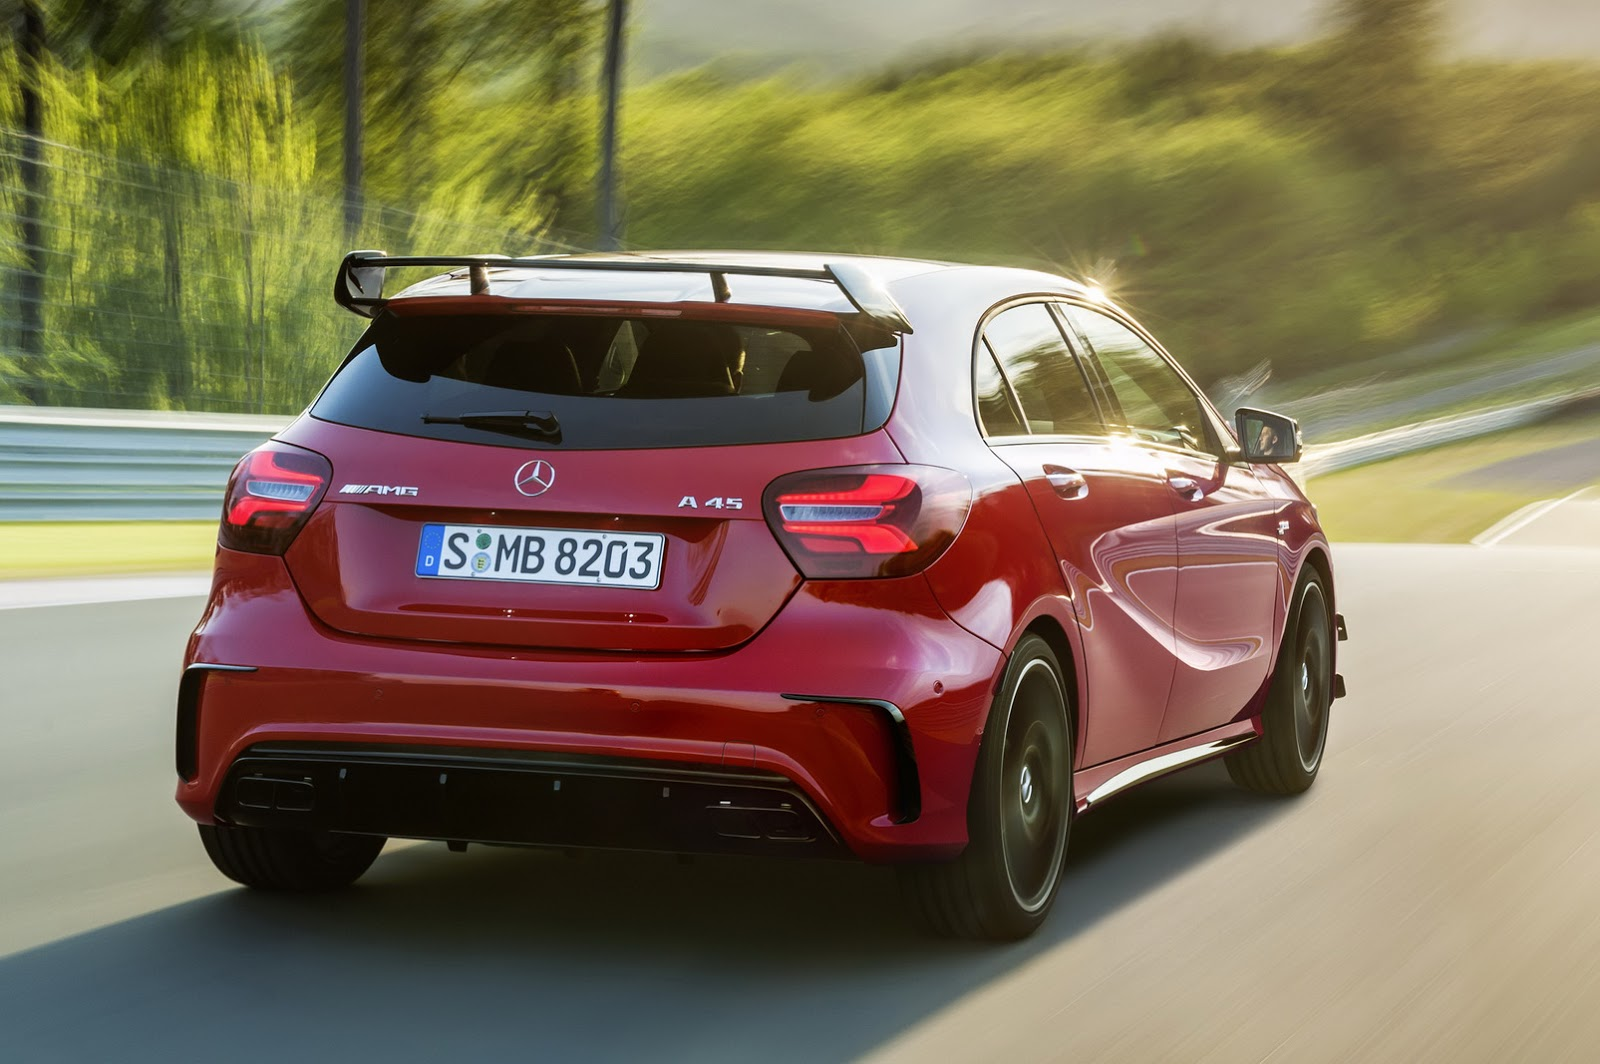 2016 mercedes amg a45 regains title of most powerful and fastest hot hatch from rs3 carscoops. Black Bedroom Furniture Sets. Home Design Ideas